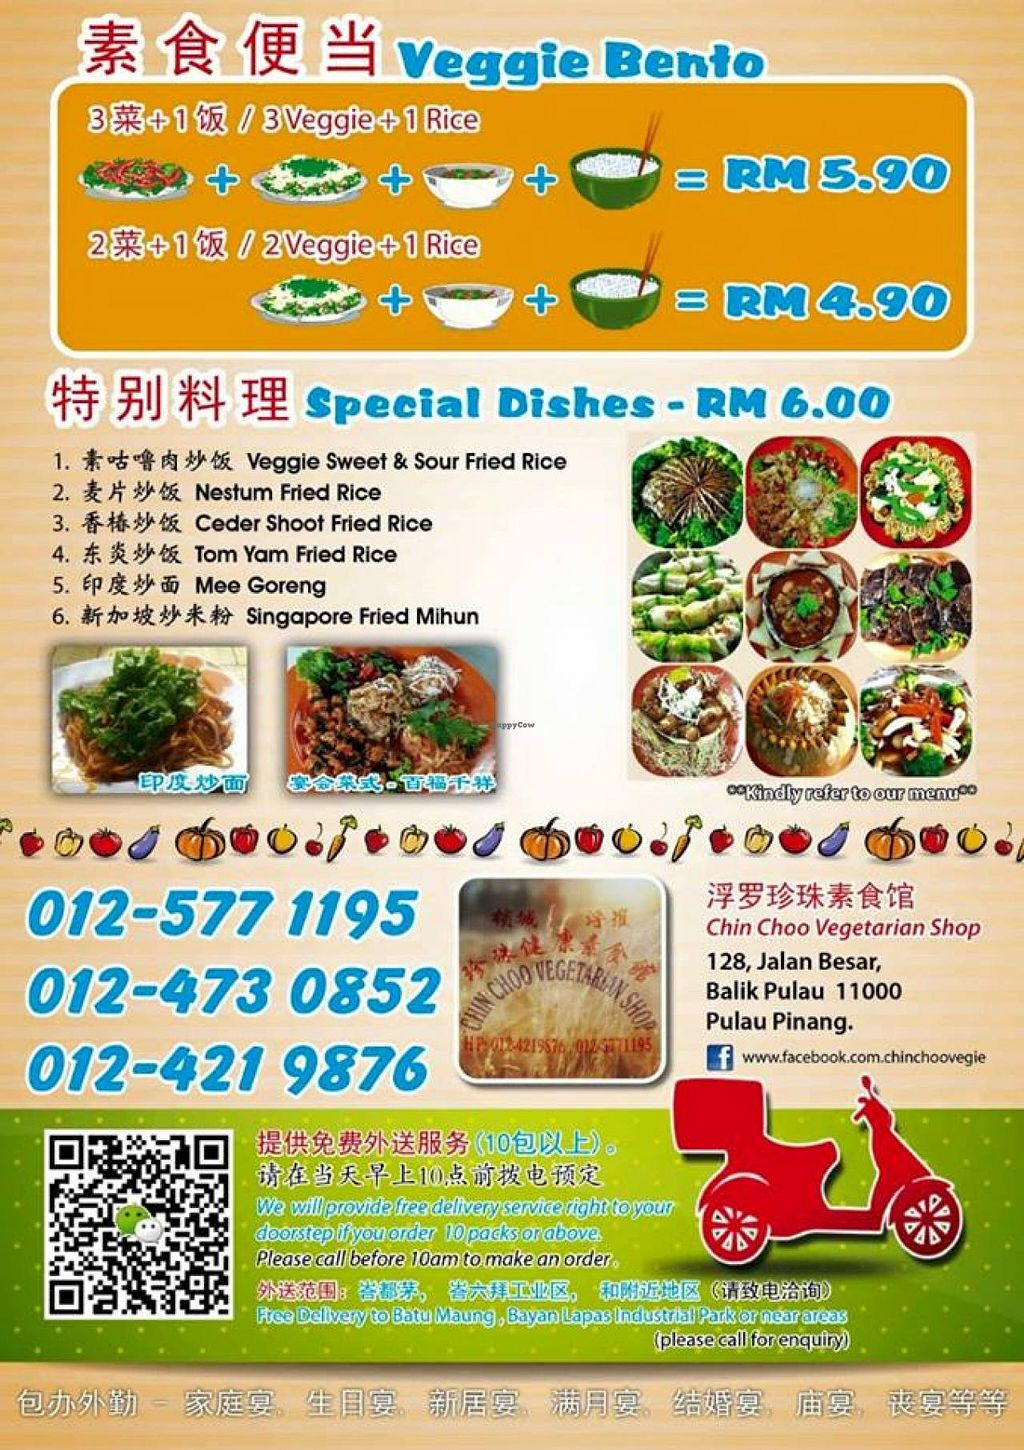 "Photo of Chin Choo Vegetarian Shop  by <a href=""/members/profile/walter007"">walter007</a> <br/>new sevice <br/> June 30, 2015  - <a href='/contact/abuse/image/51077/107747'>Report</a>"